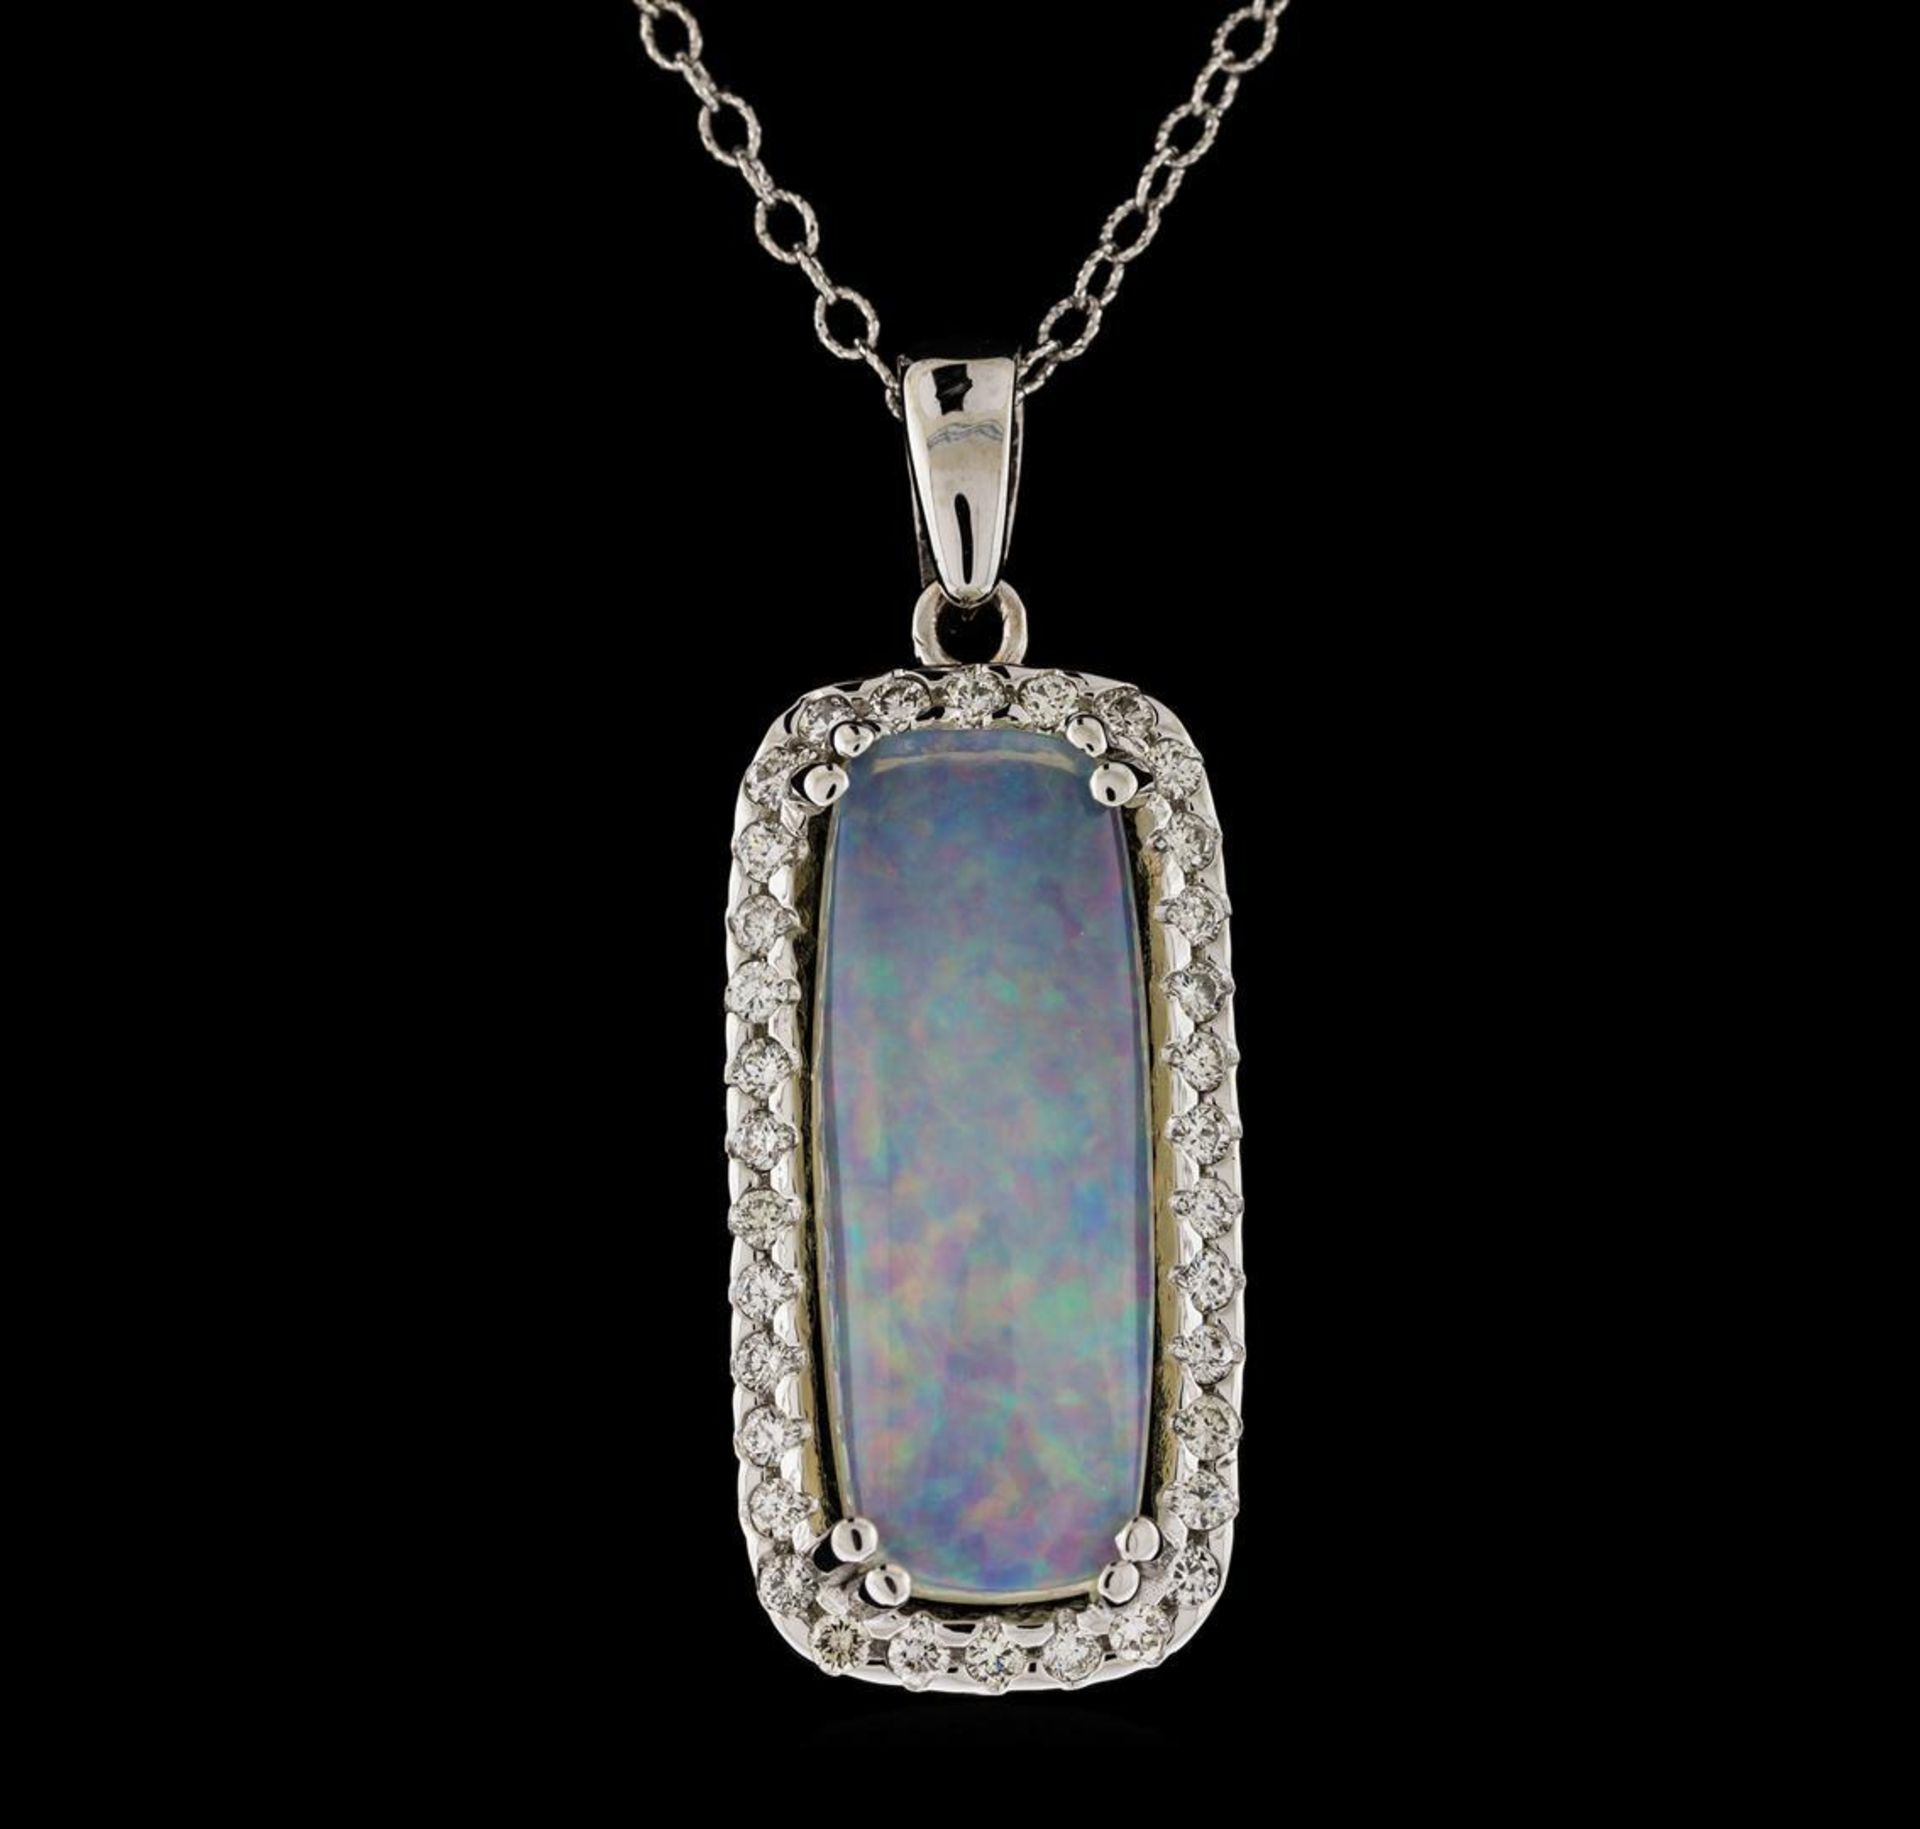 8.67 ctw Opal and Diamond Pendant With Chain - 14KT White Gold - Image 2 of 3